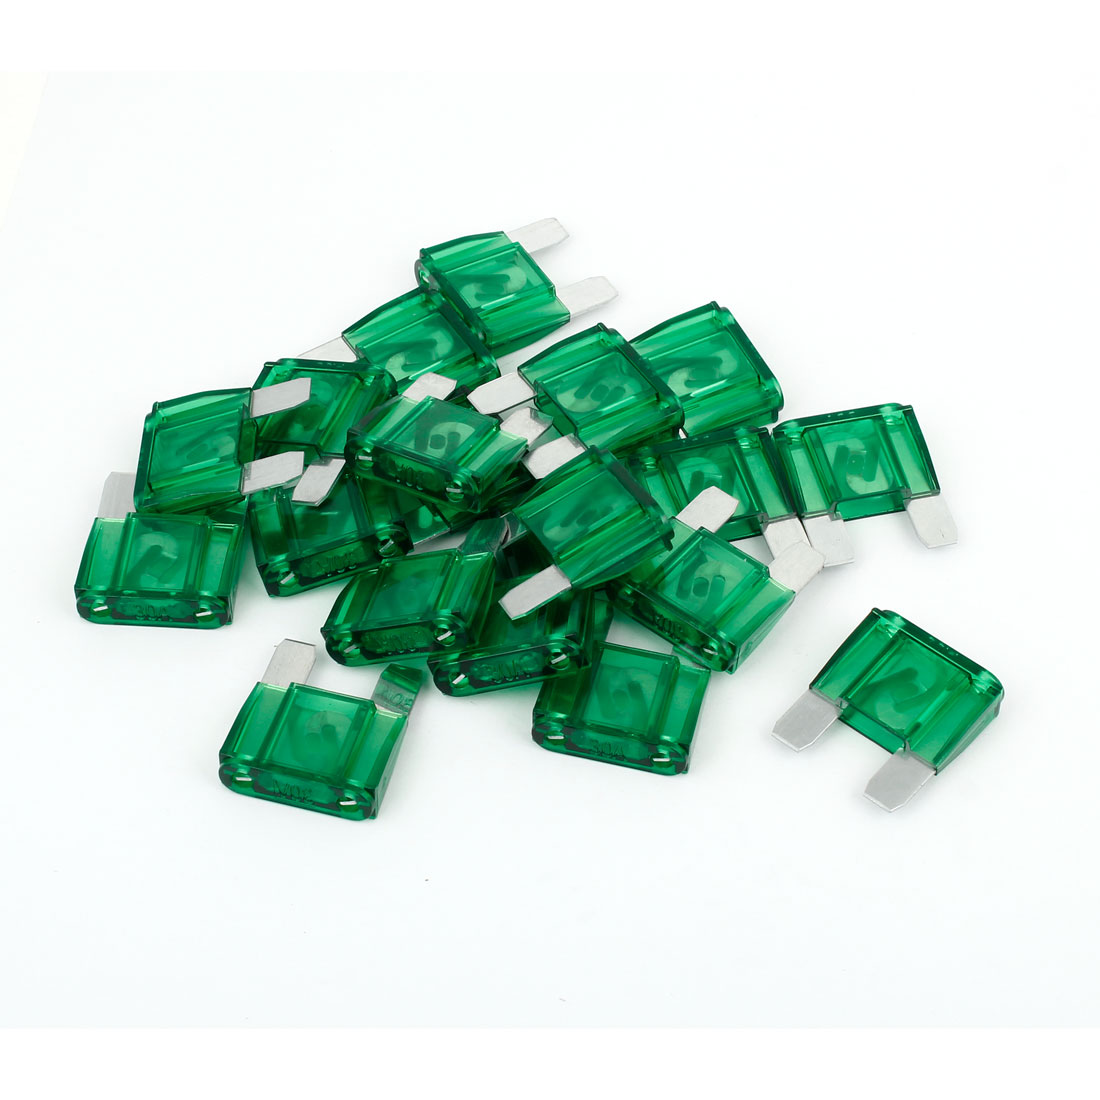 20 Pcs 30A Green Shell Auto Car Motorcycle Large Size Blade Fuse